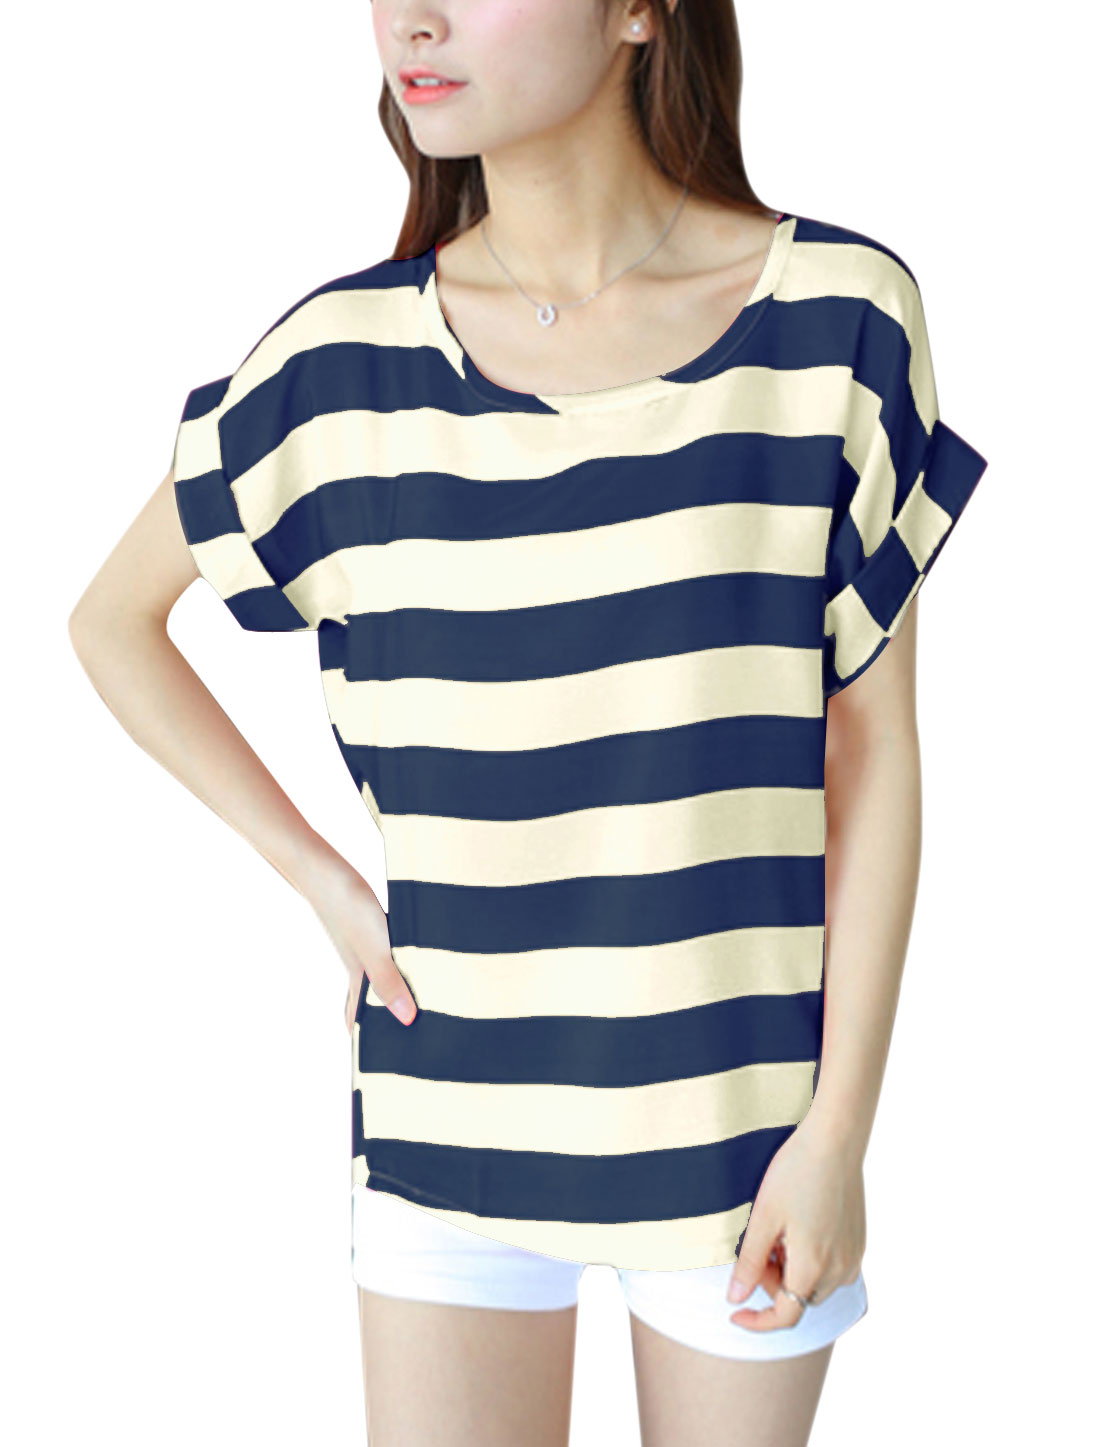 Lady U Neck Short Batwing Sleeve Stripes Pattern Tee Navy Blue XS